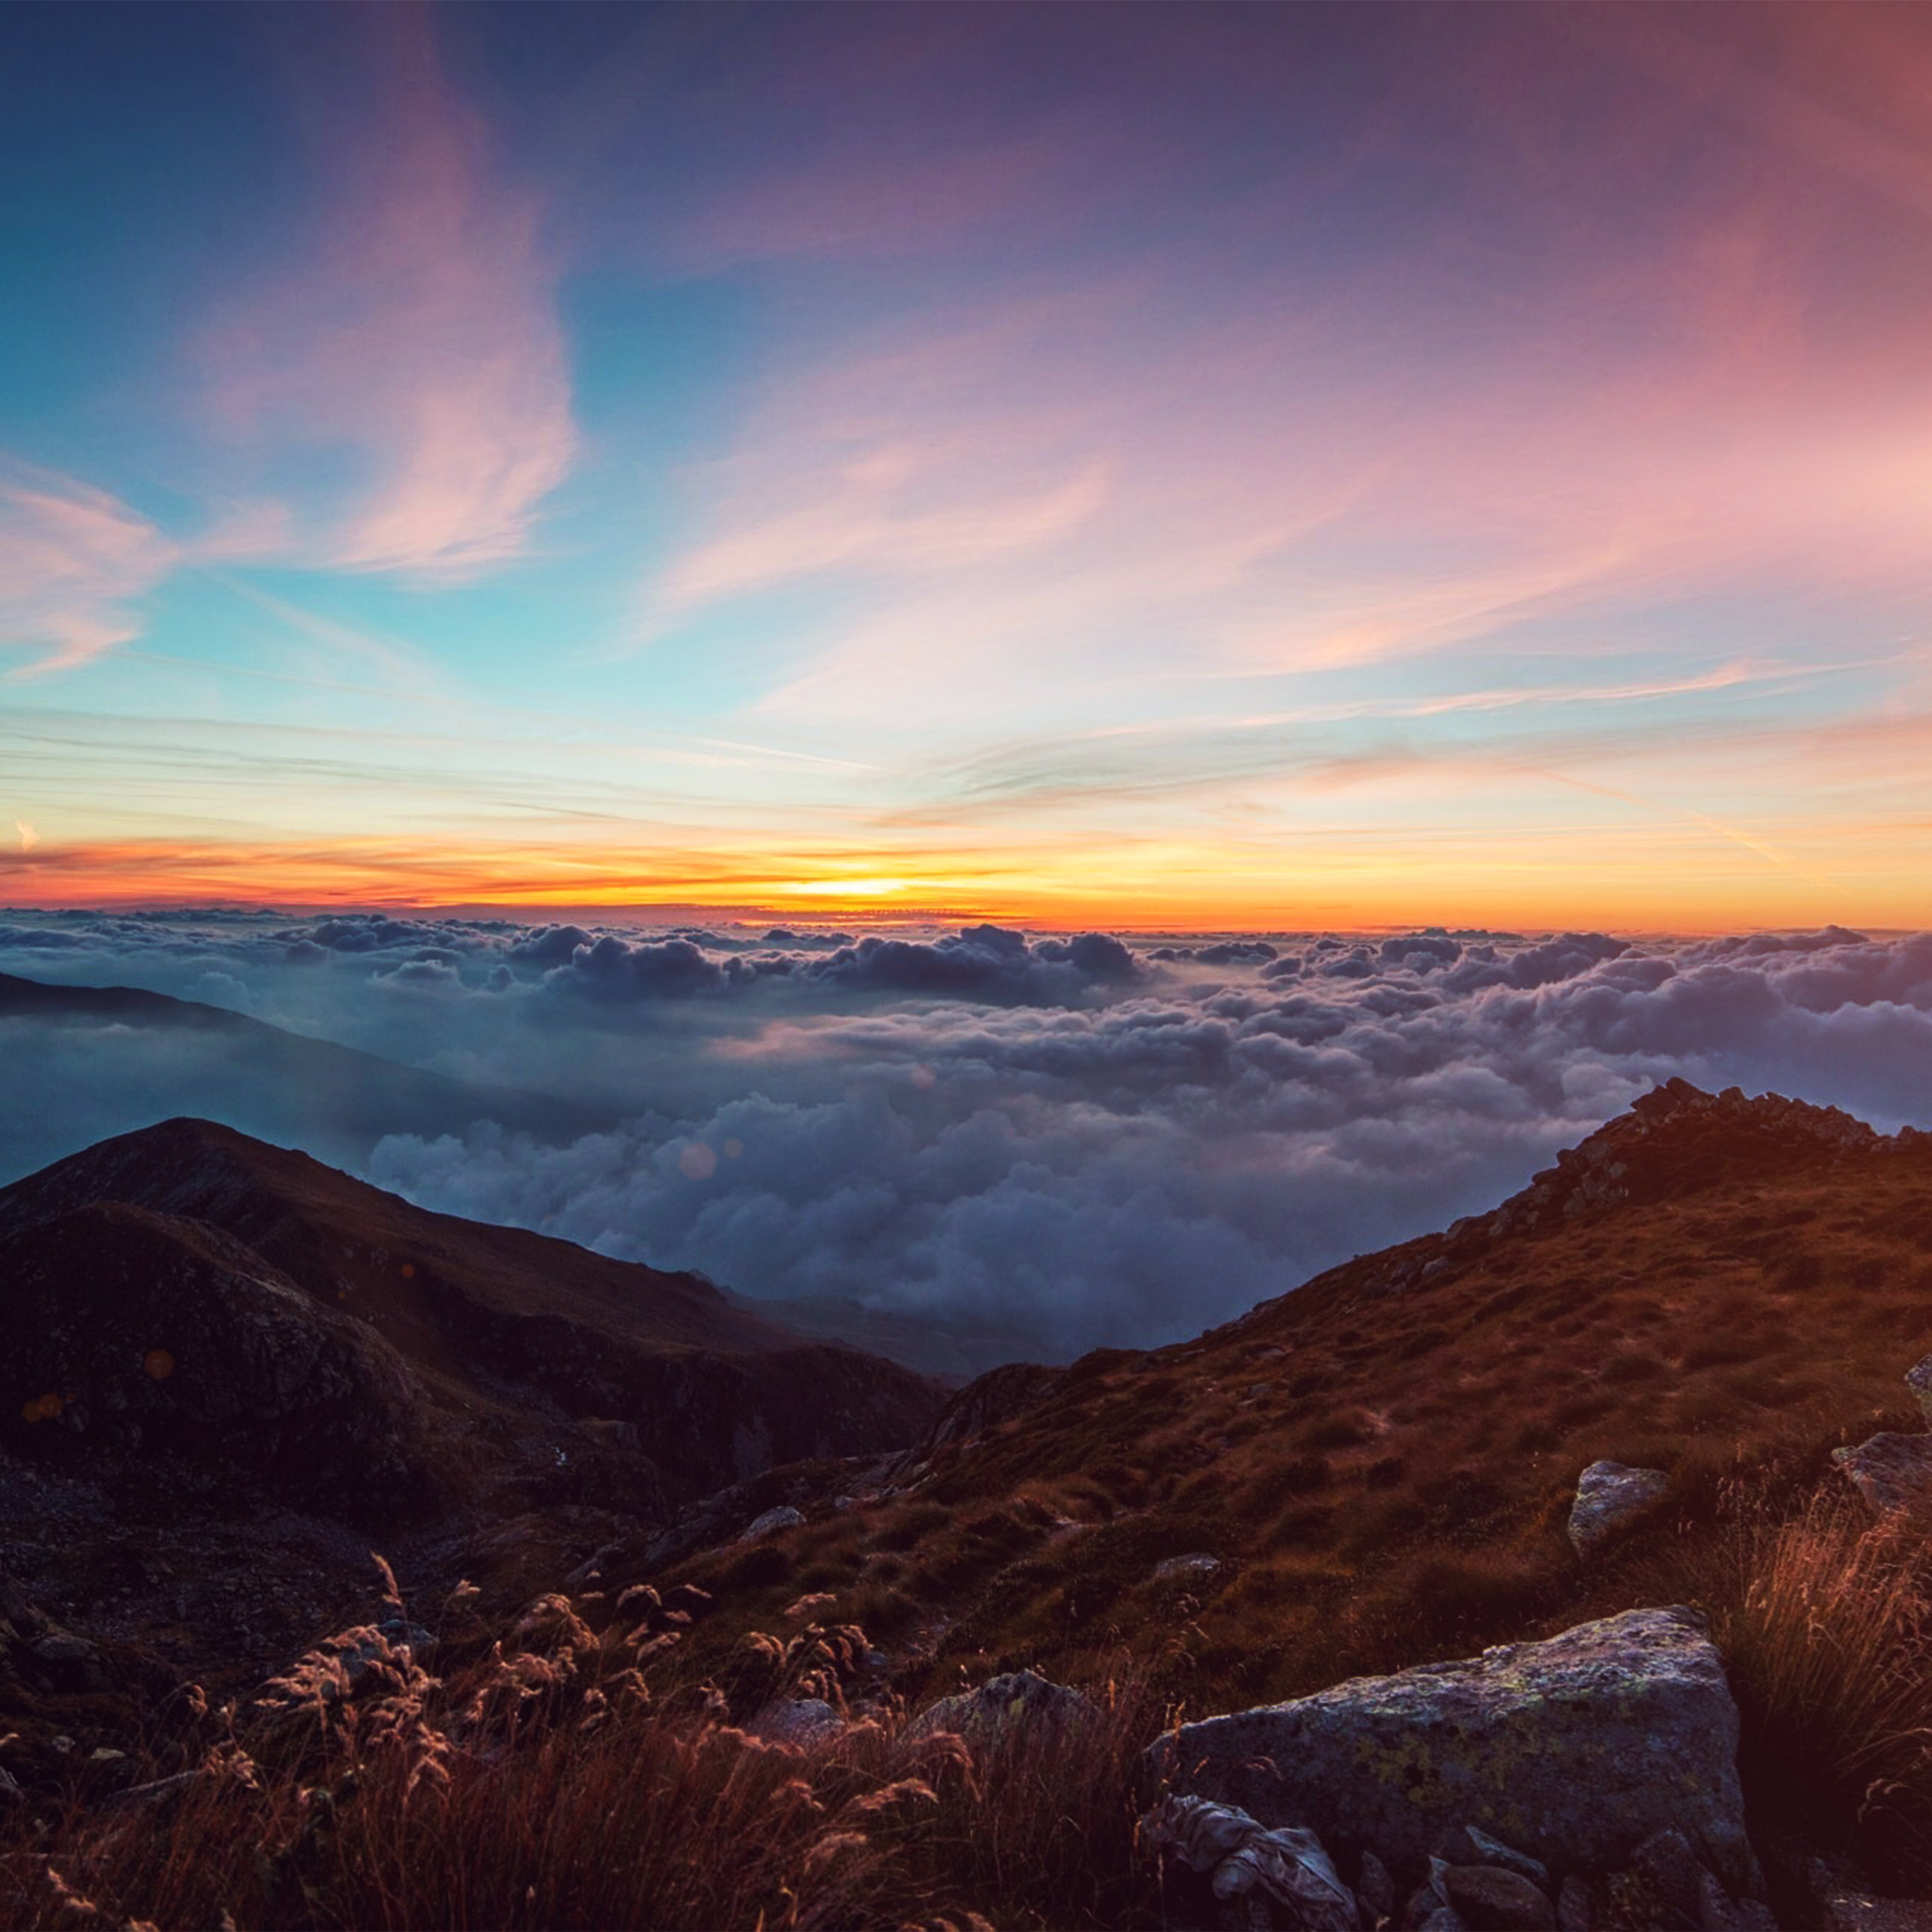 Sunrise wallpaper for iPhone idownloadblog clouds mountains